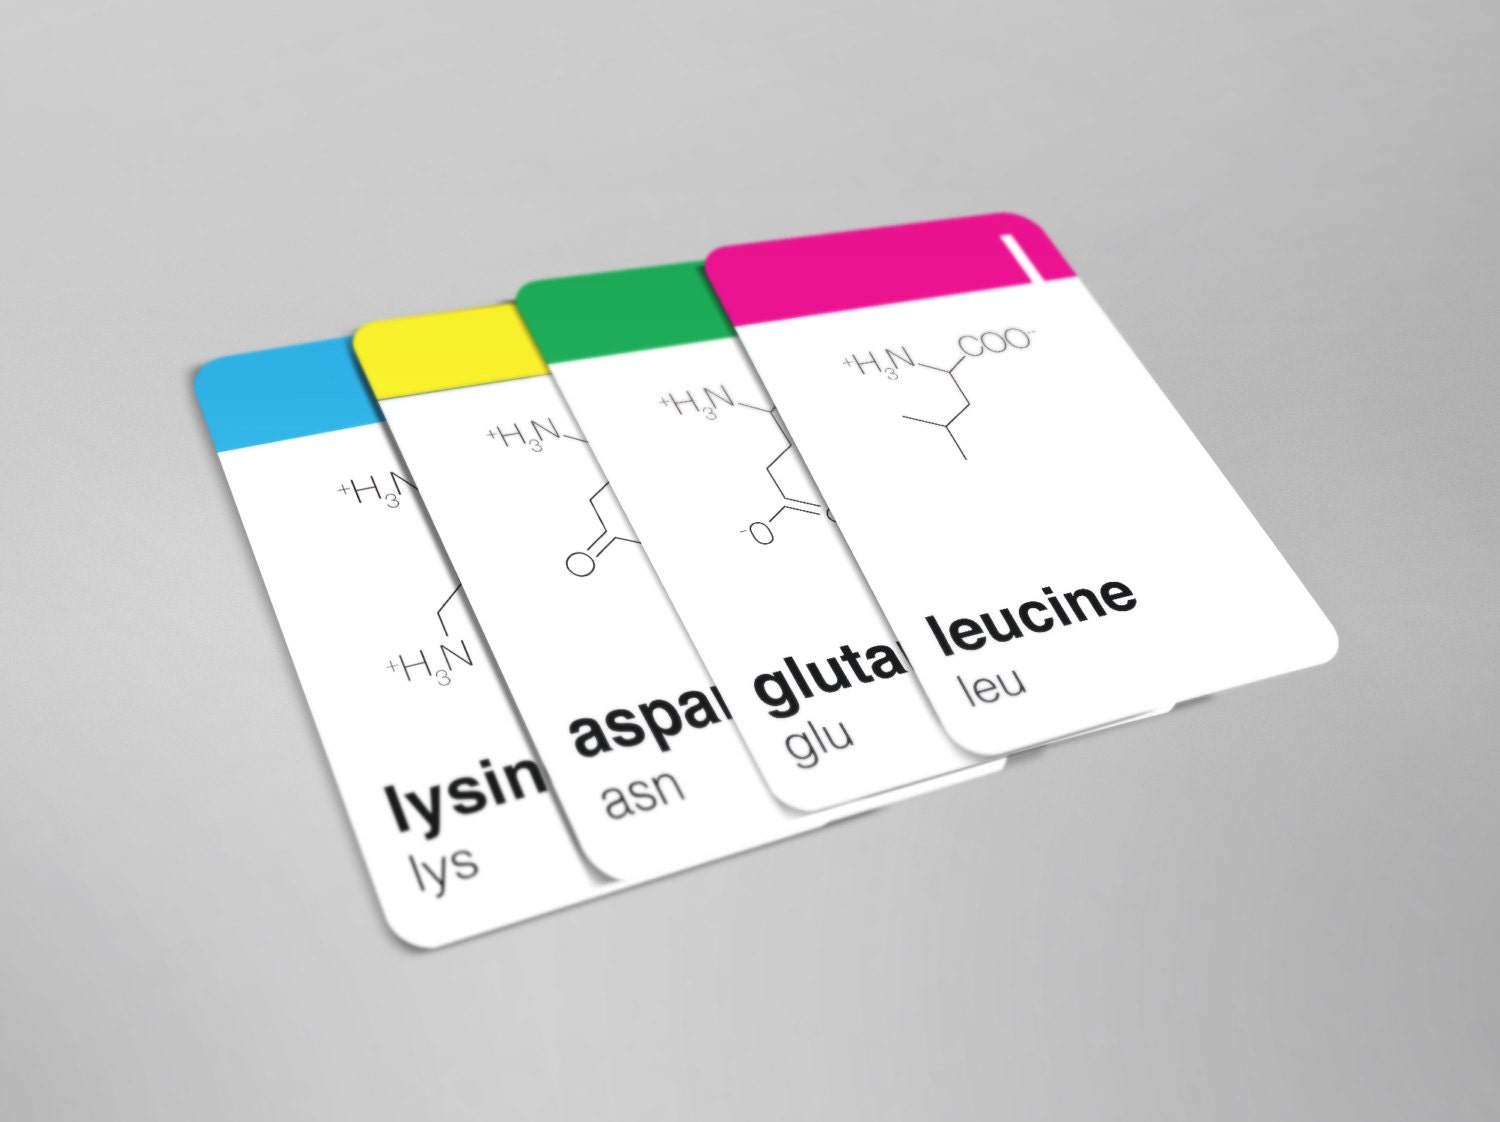 photo about Amino Acid Flashcards Printable called Mino - Amino Acid Flash Playing cards - Minimalist